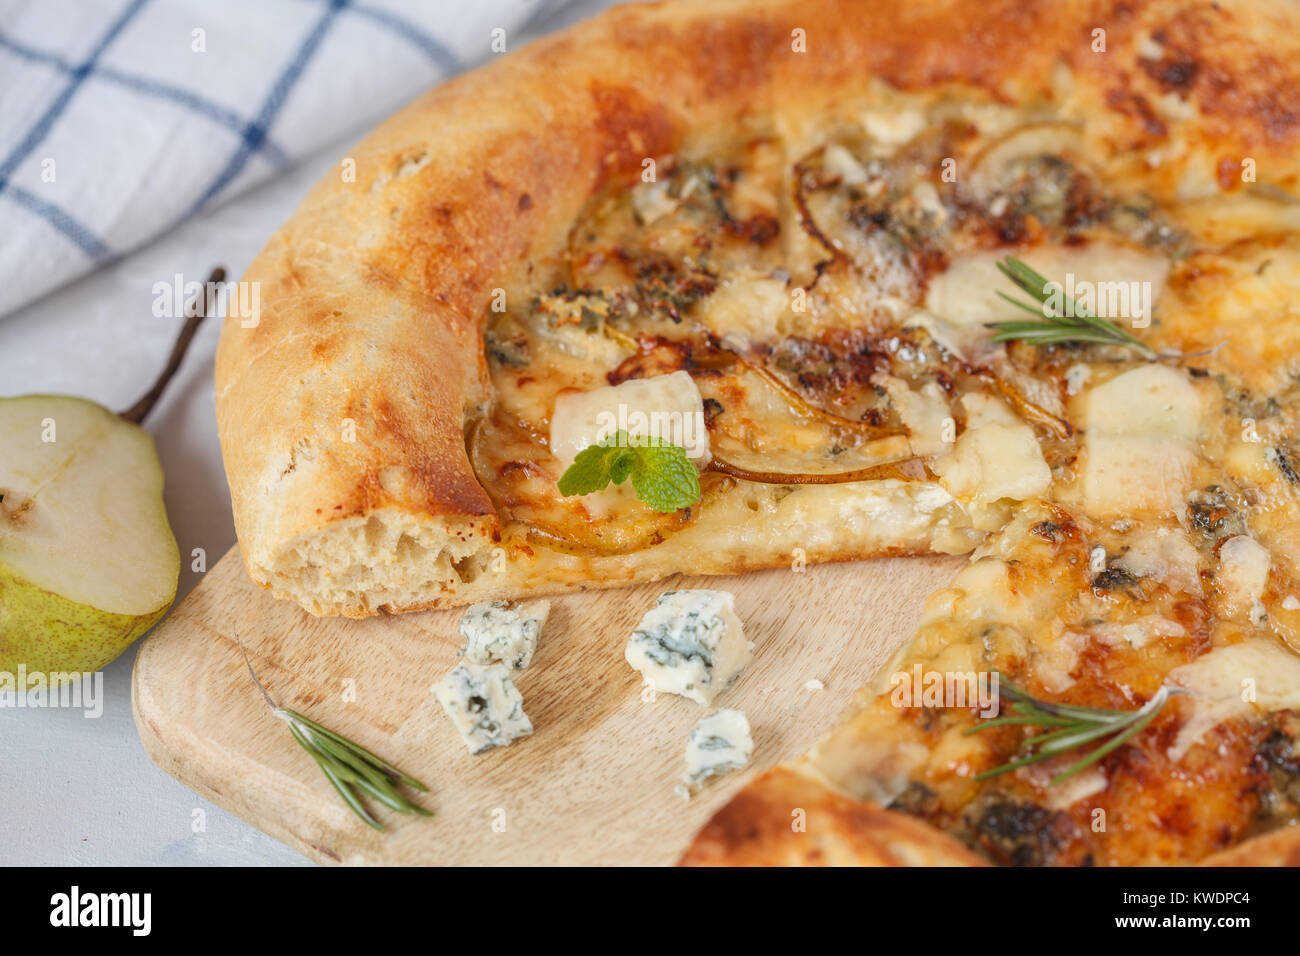 Hot delicous pizza with pear and blue cheese on wooden board. Vegetarian healthy food concept, traditional Italian - Stock Image